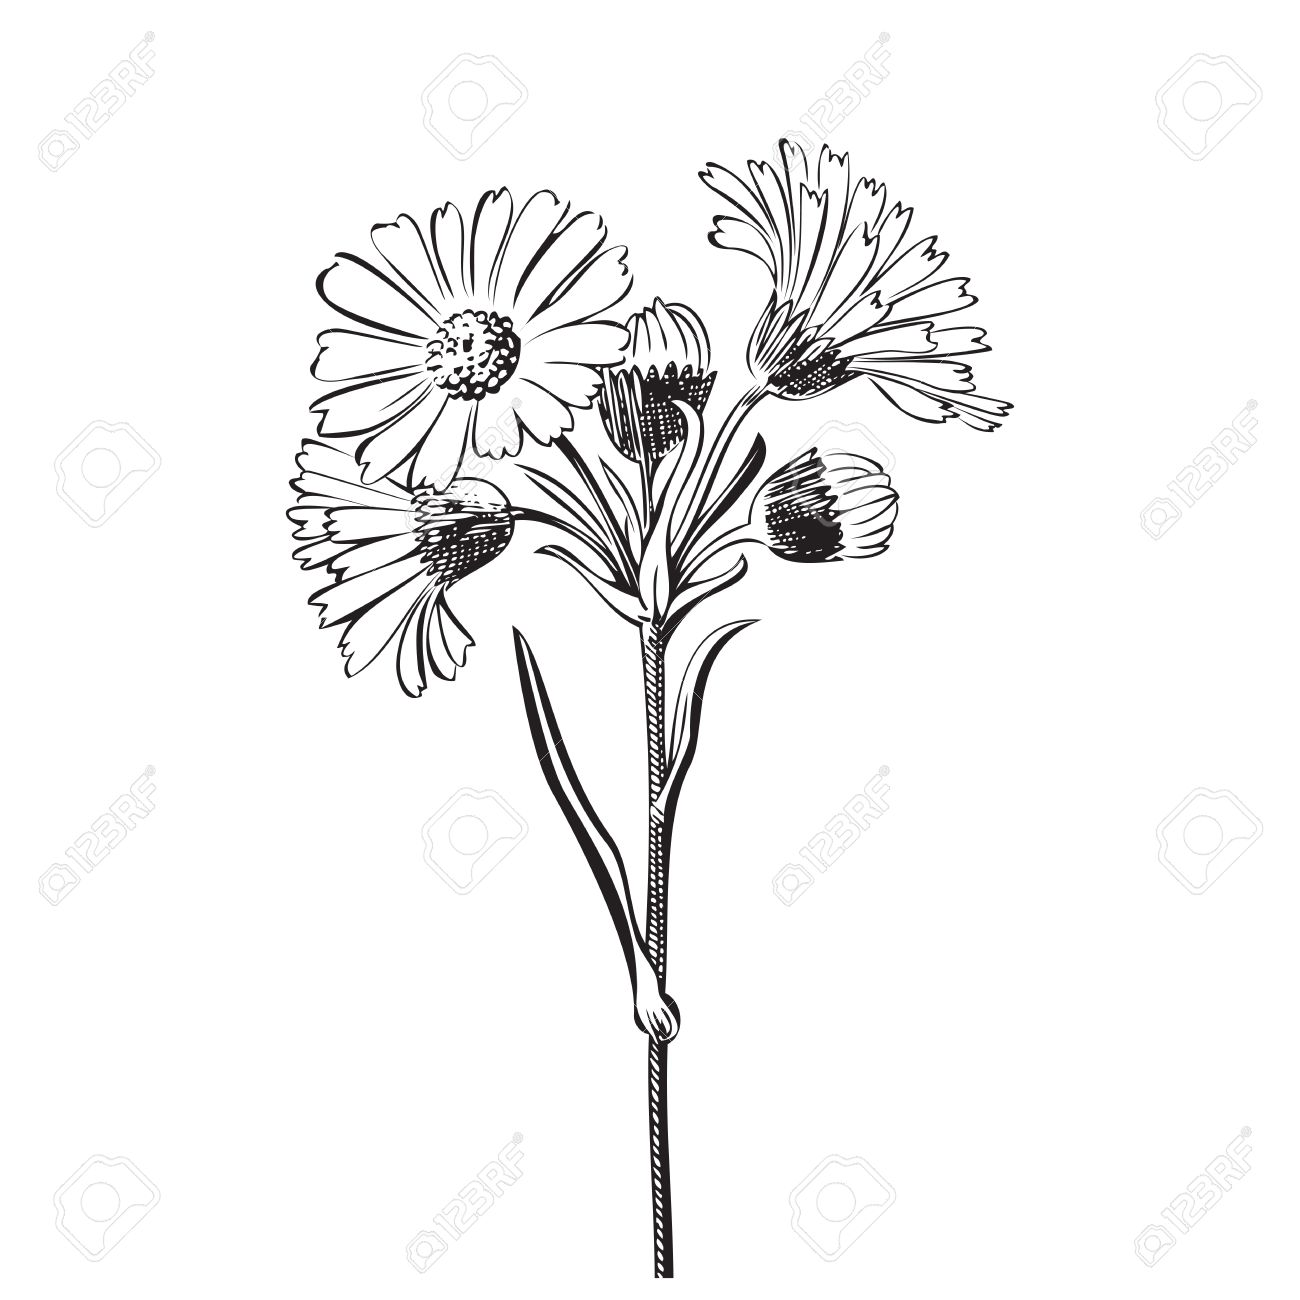 1300x1300 Hand Drawn Bouquet Of Daisy Flowers Isolated On White Background